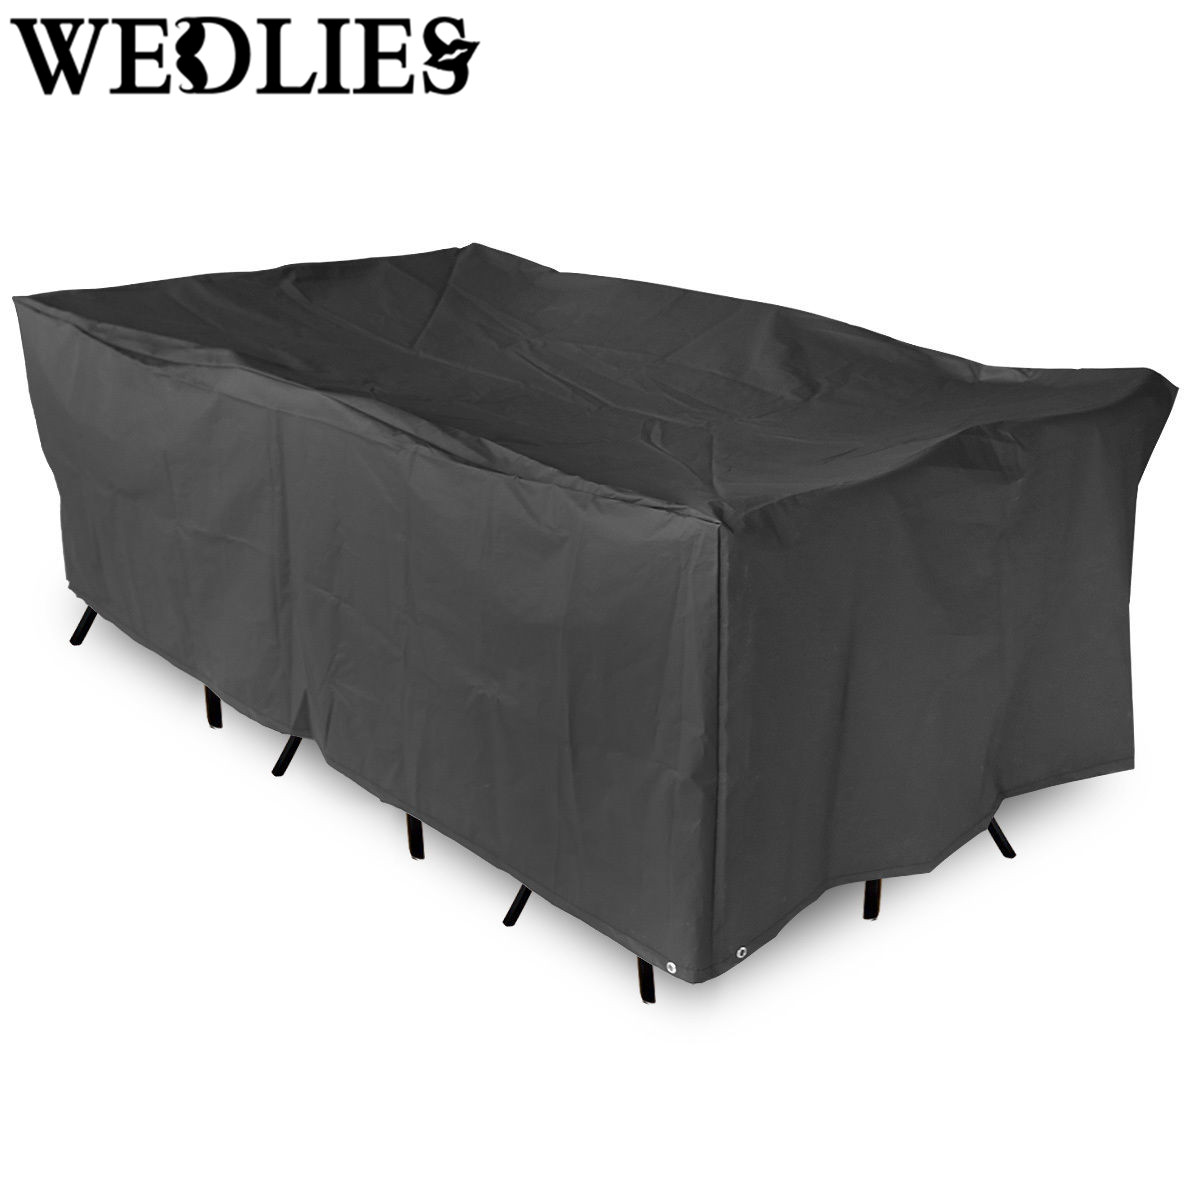 wedlies Black Polyester Table Cover Waterproof Outdoor